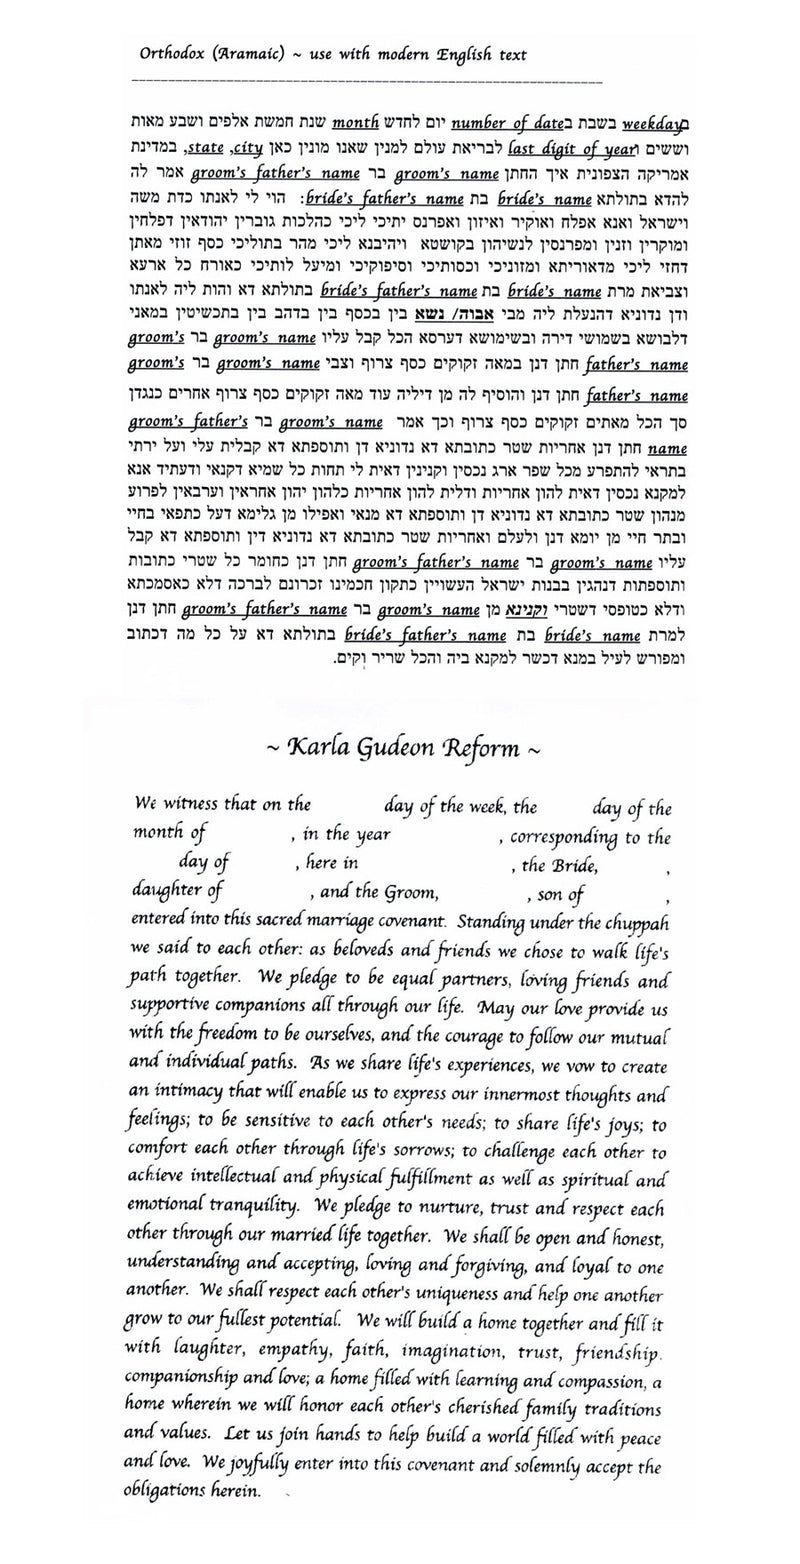 In Safe Hands Ketubah by Karla Gudeon